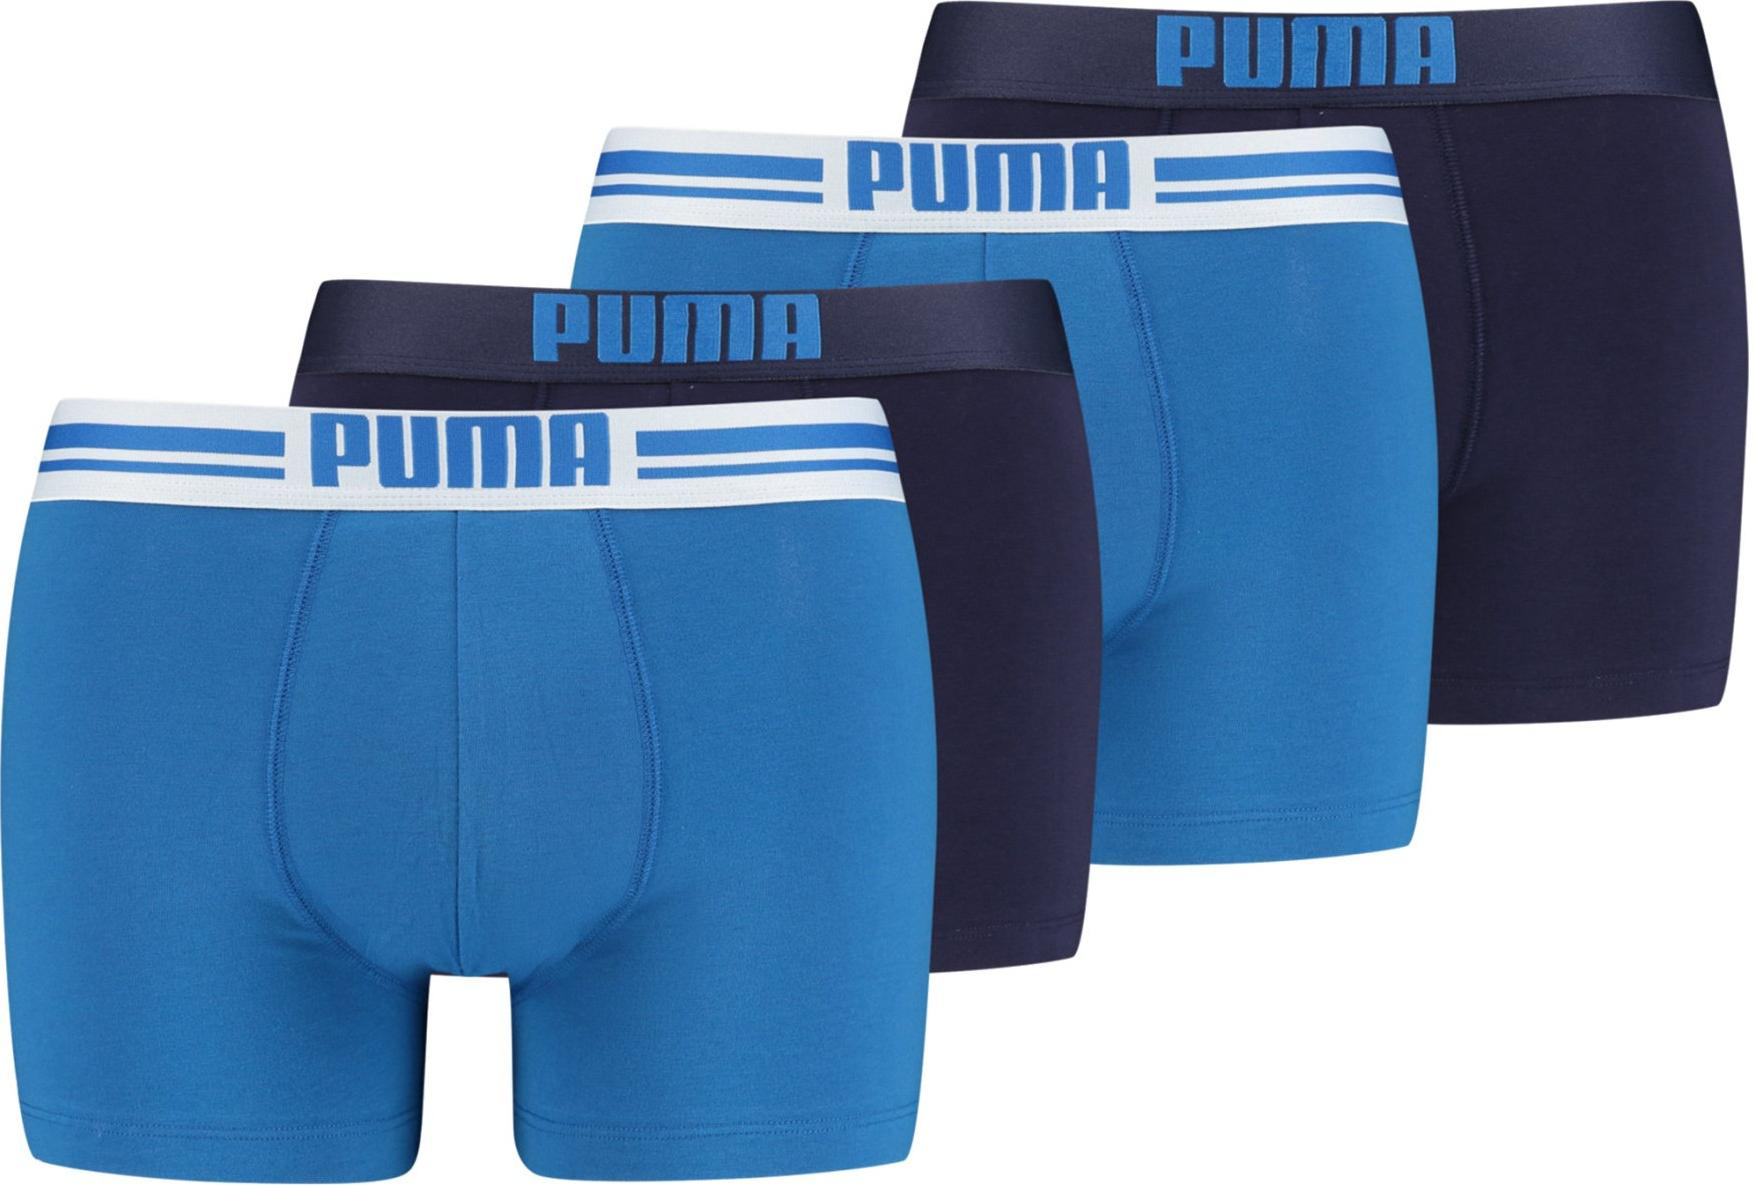 Boxer shorts Puma Placed Logo Boxer 4 PACK